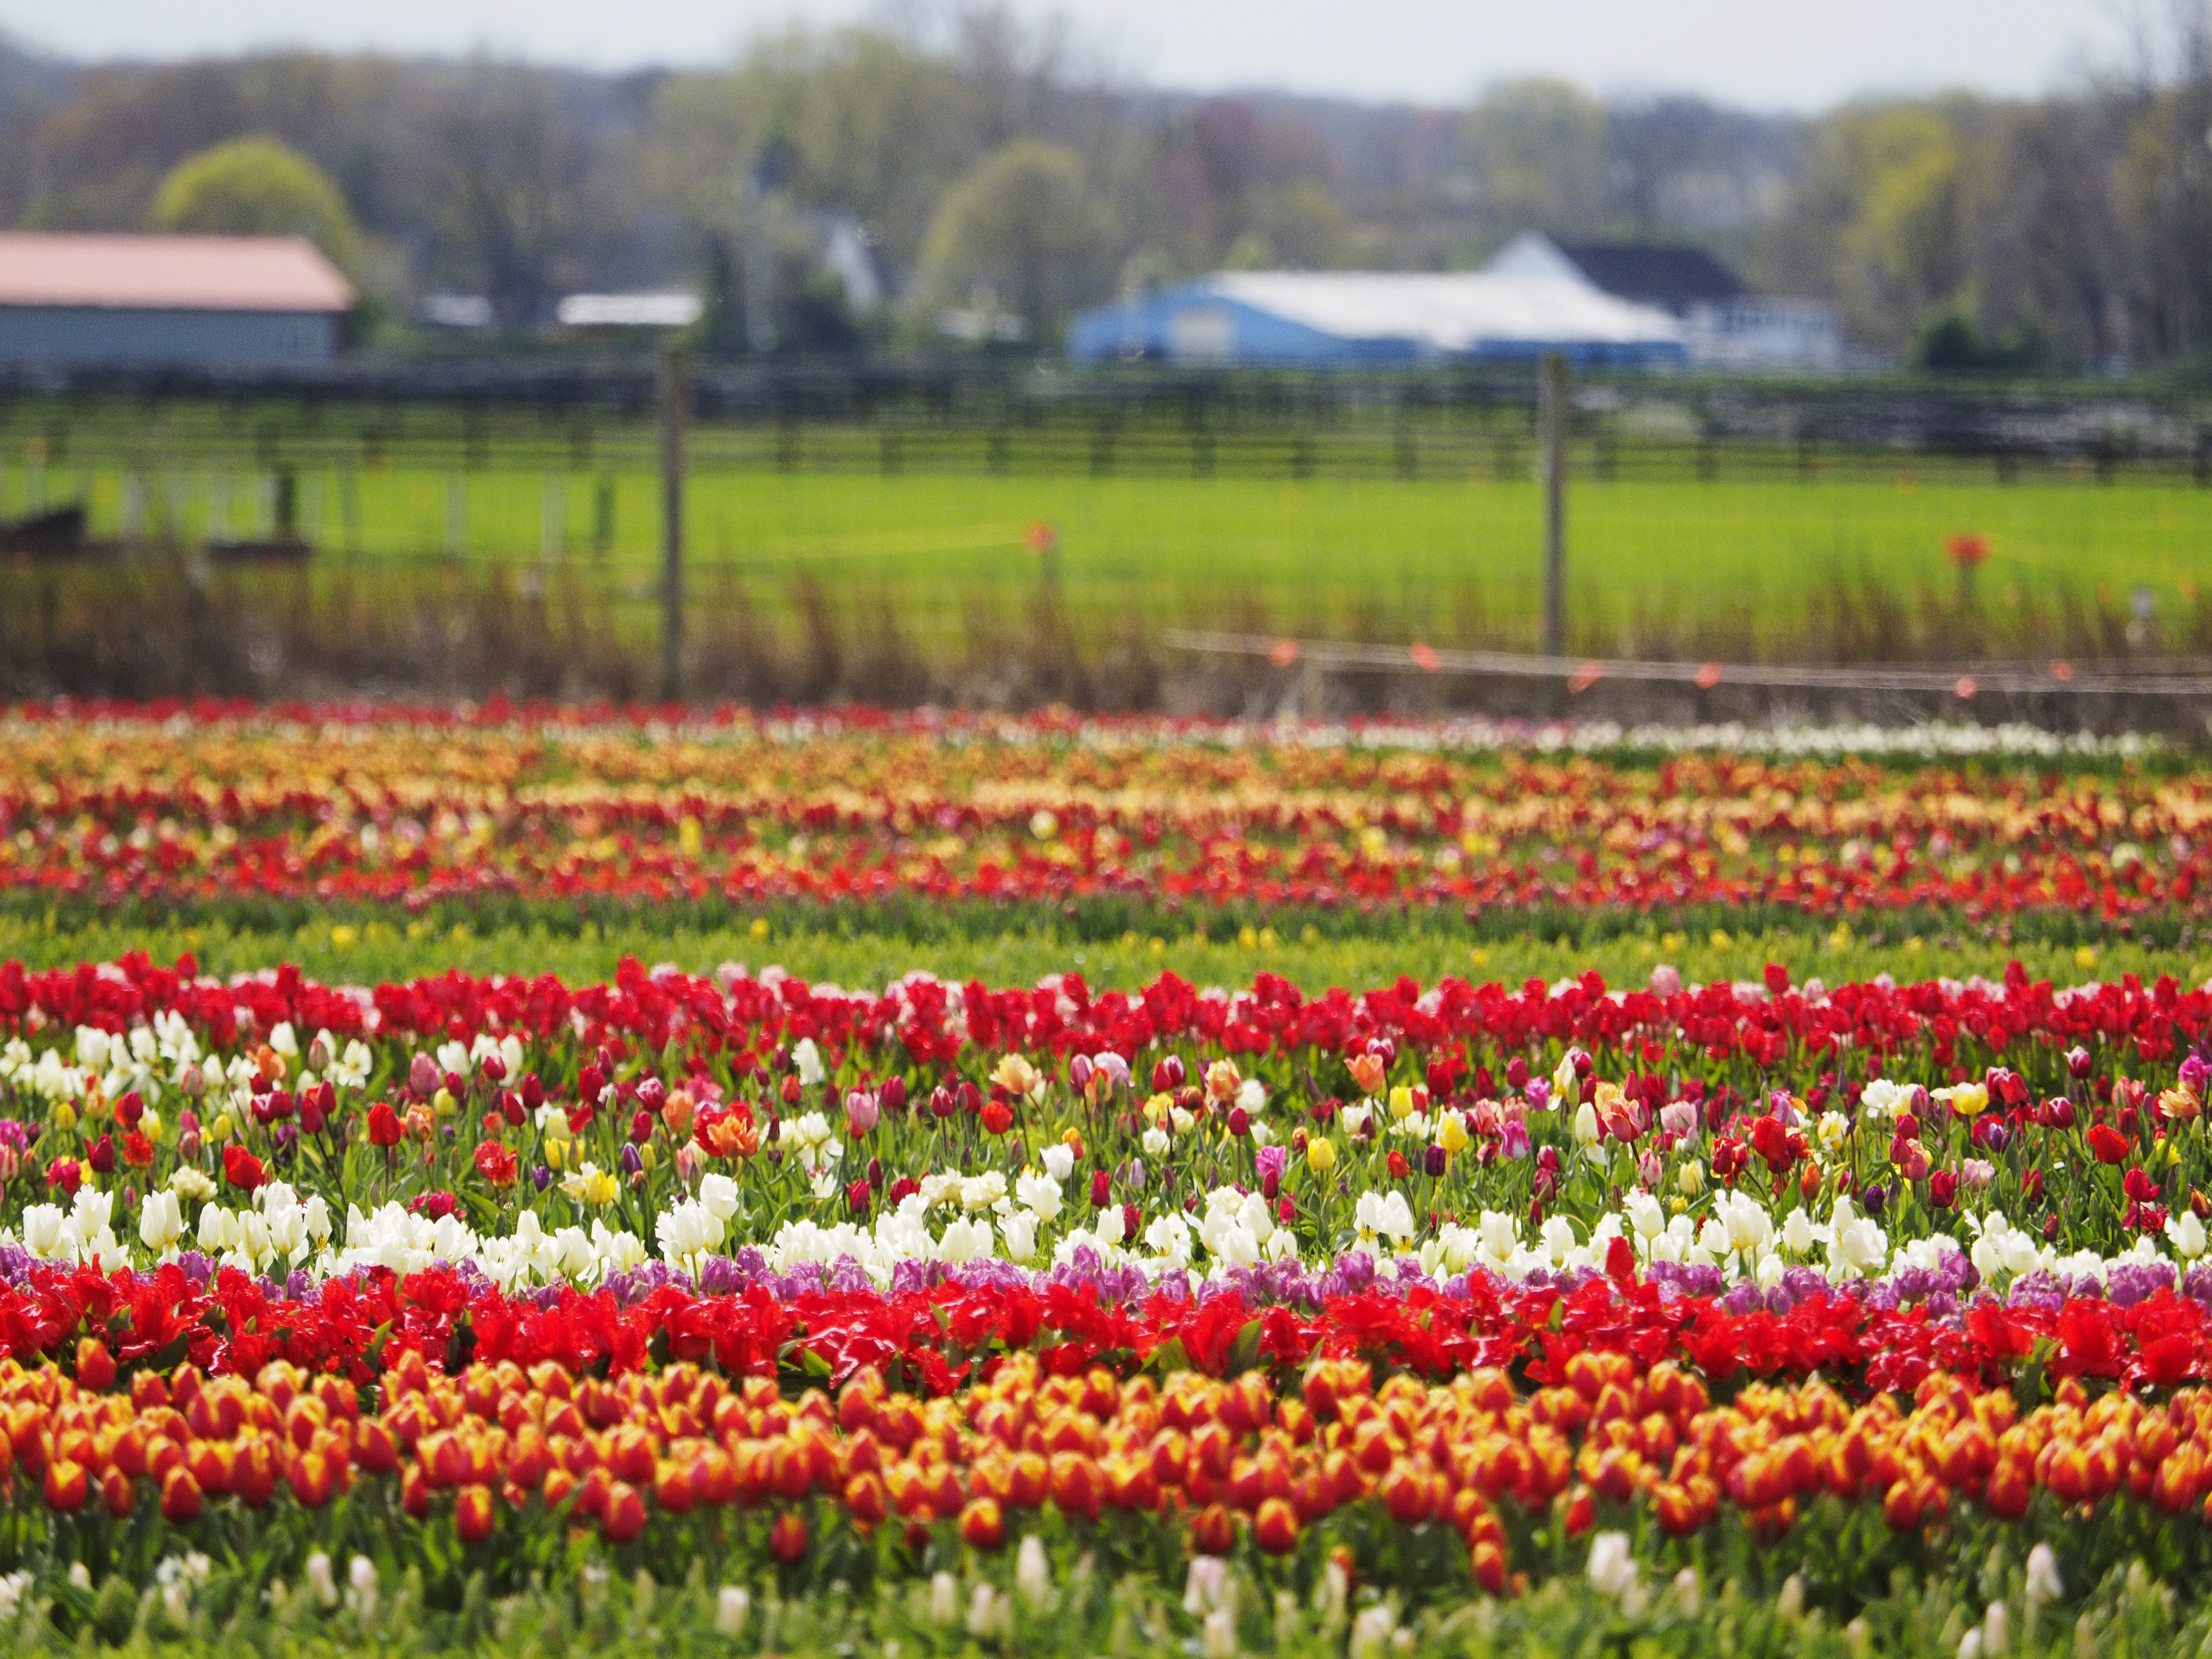 Lowering The Boom On This Spring S Bloom At Popular Garden State Tulip Farm Nj Com